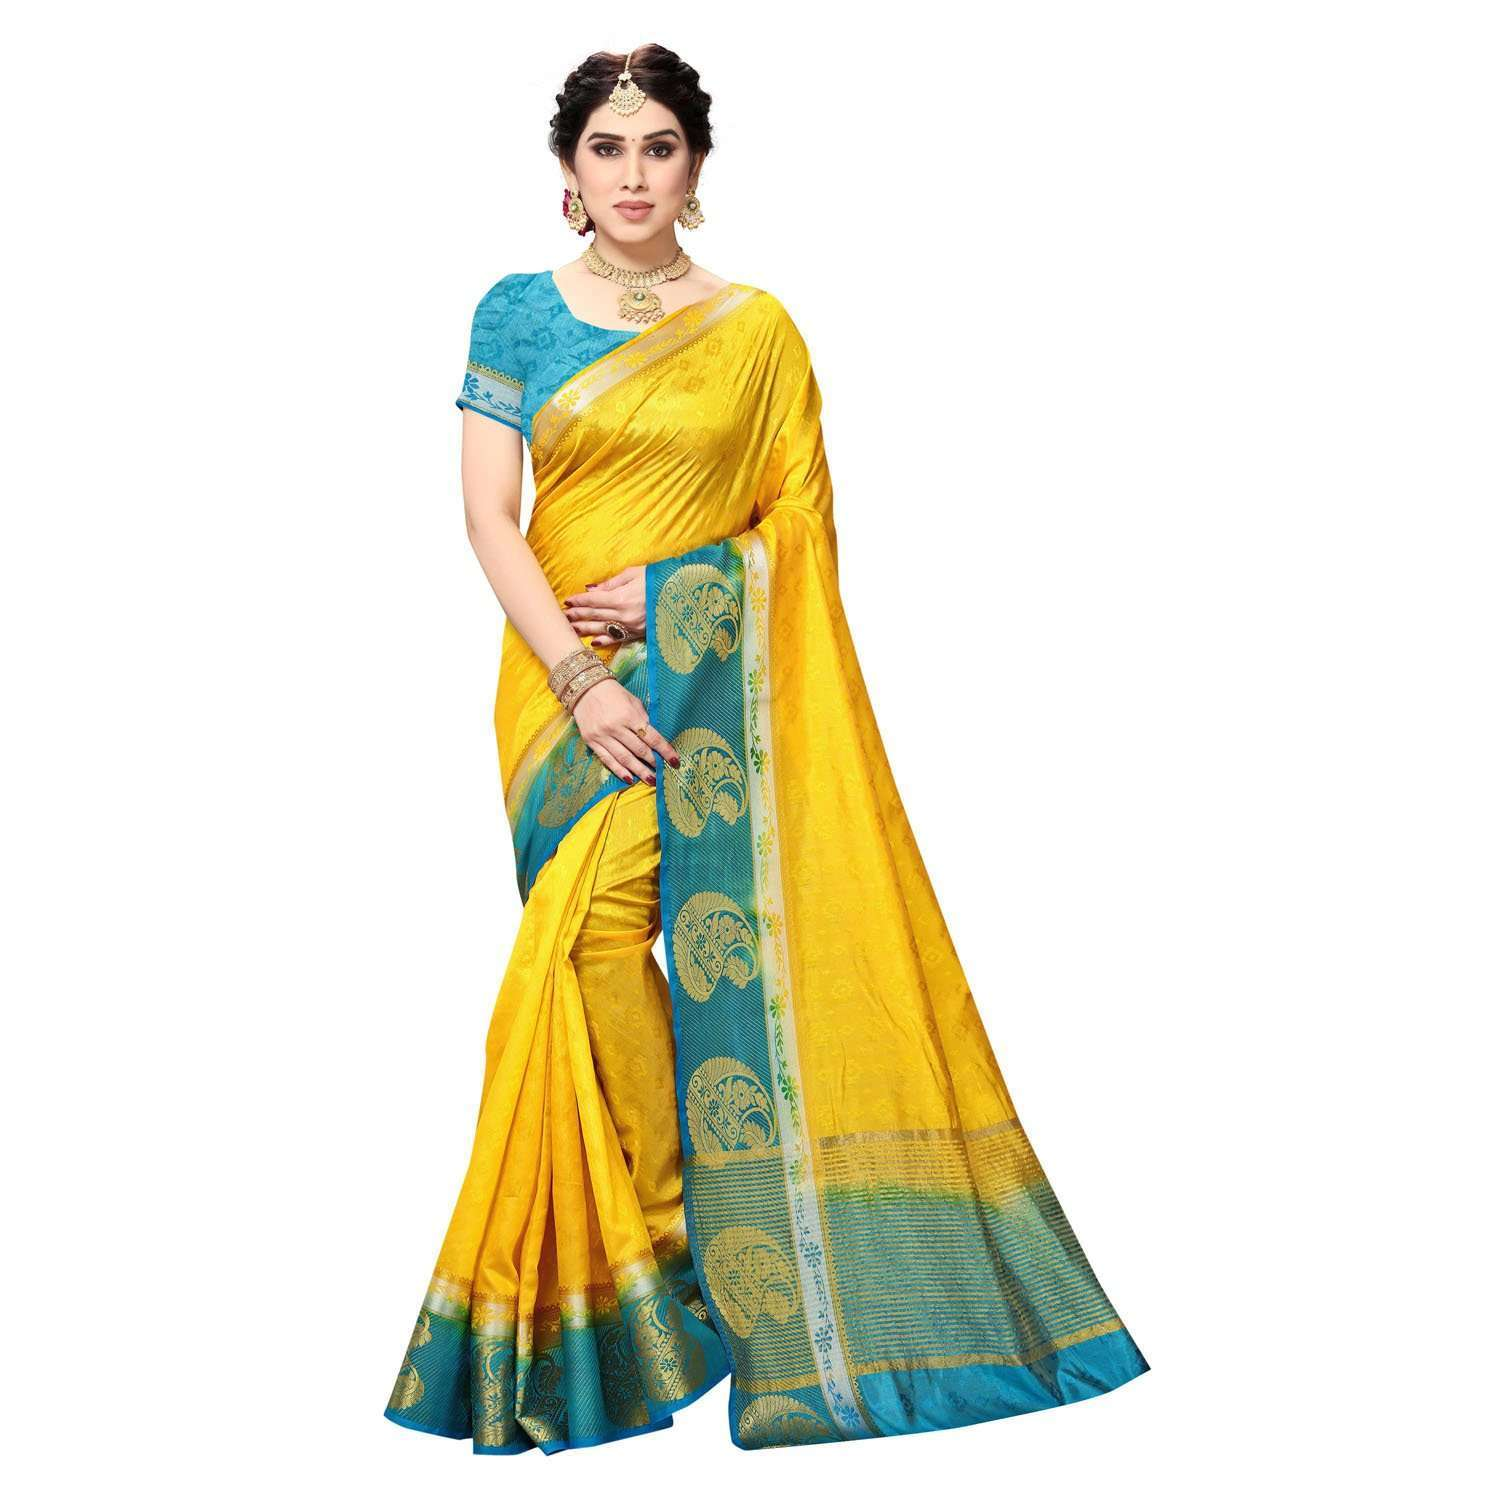 Arars Women's Kanchipuram Kanjivaram Pattu Style Kanjivaram Plain Silk Saree With Blouse (471 GOLD BLUE )